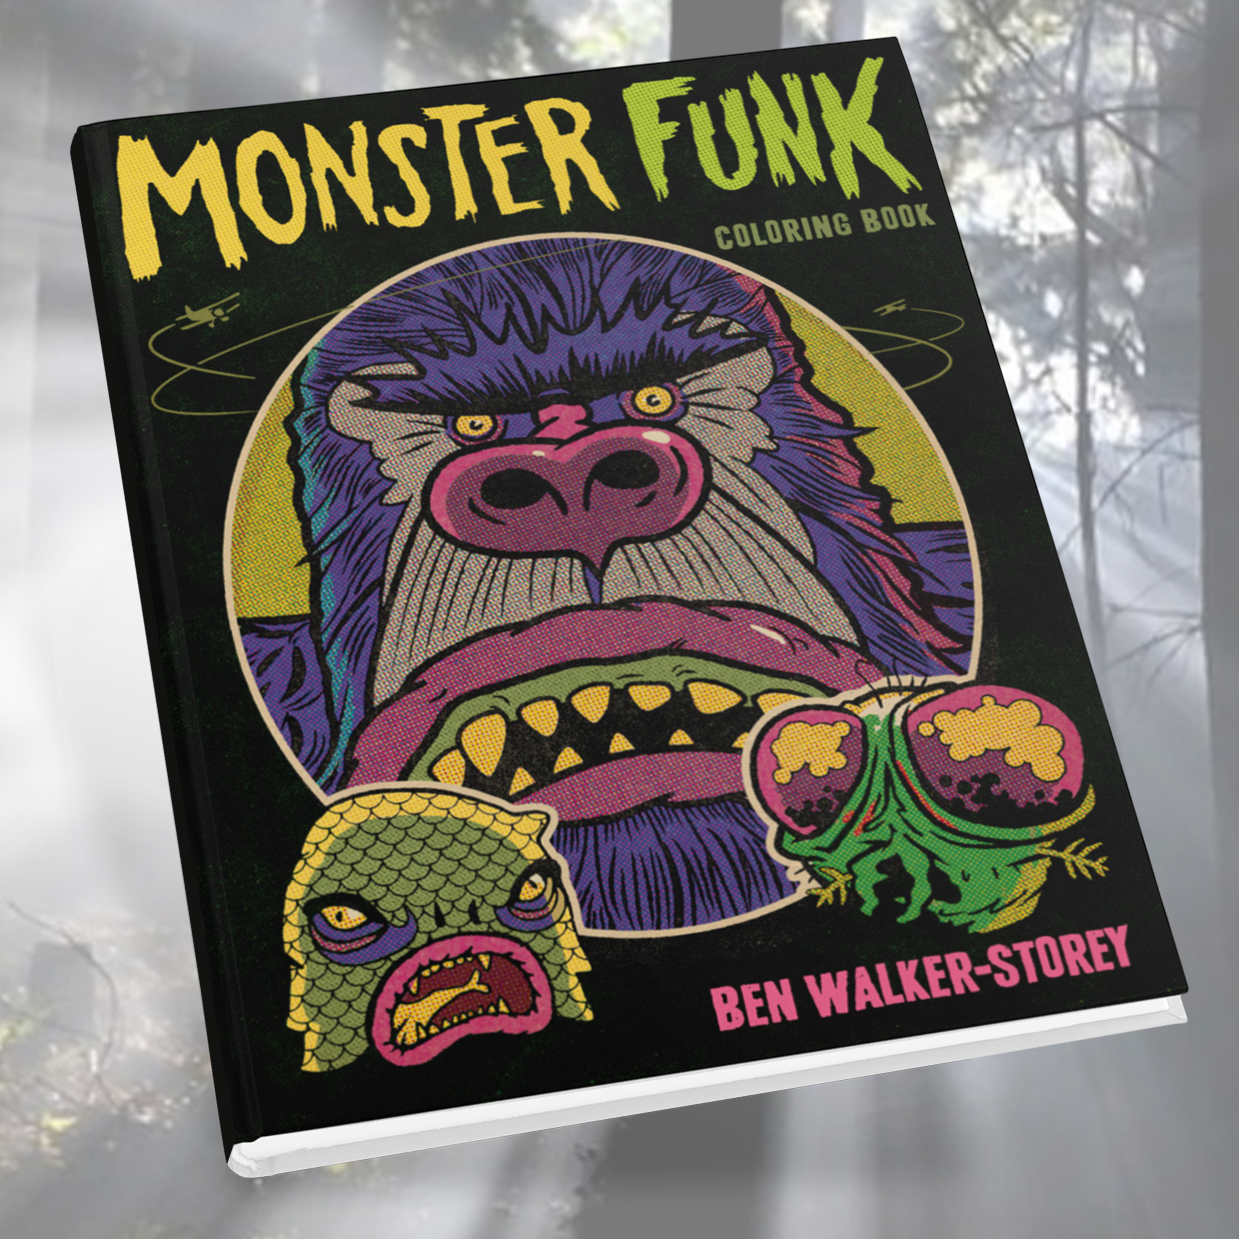 Monster_Funk_store_image.png